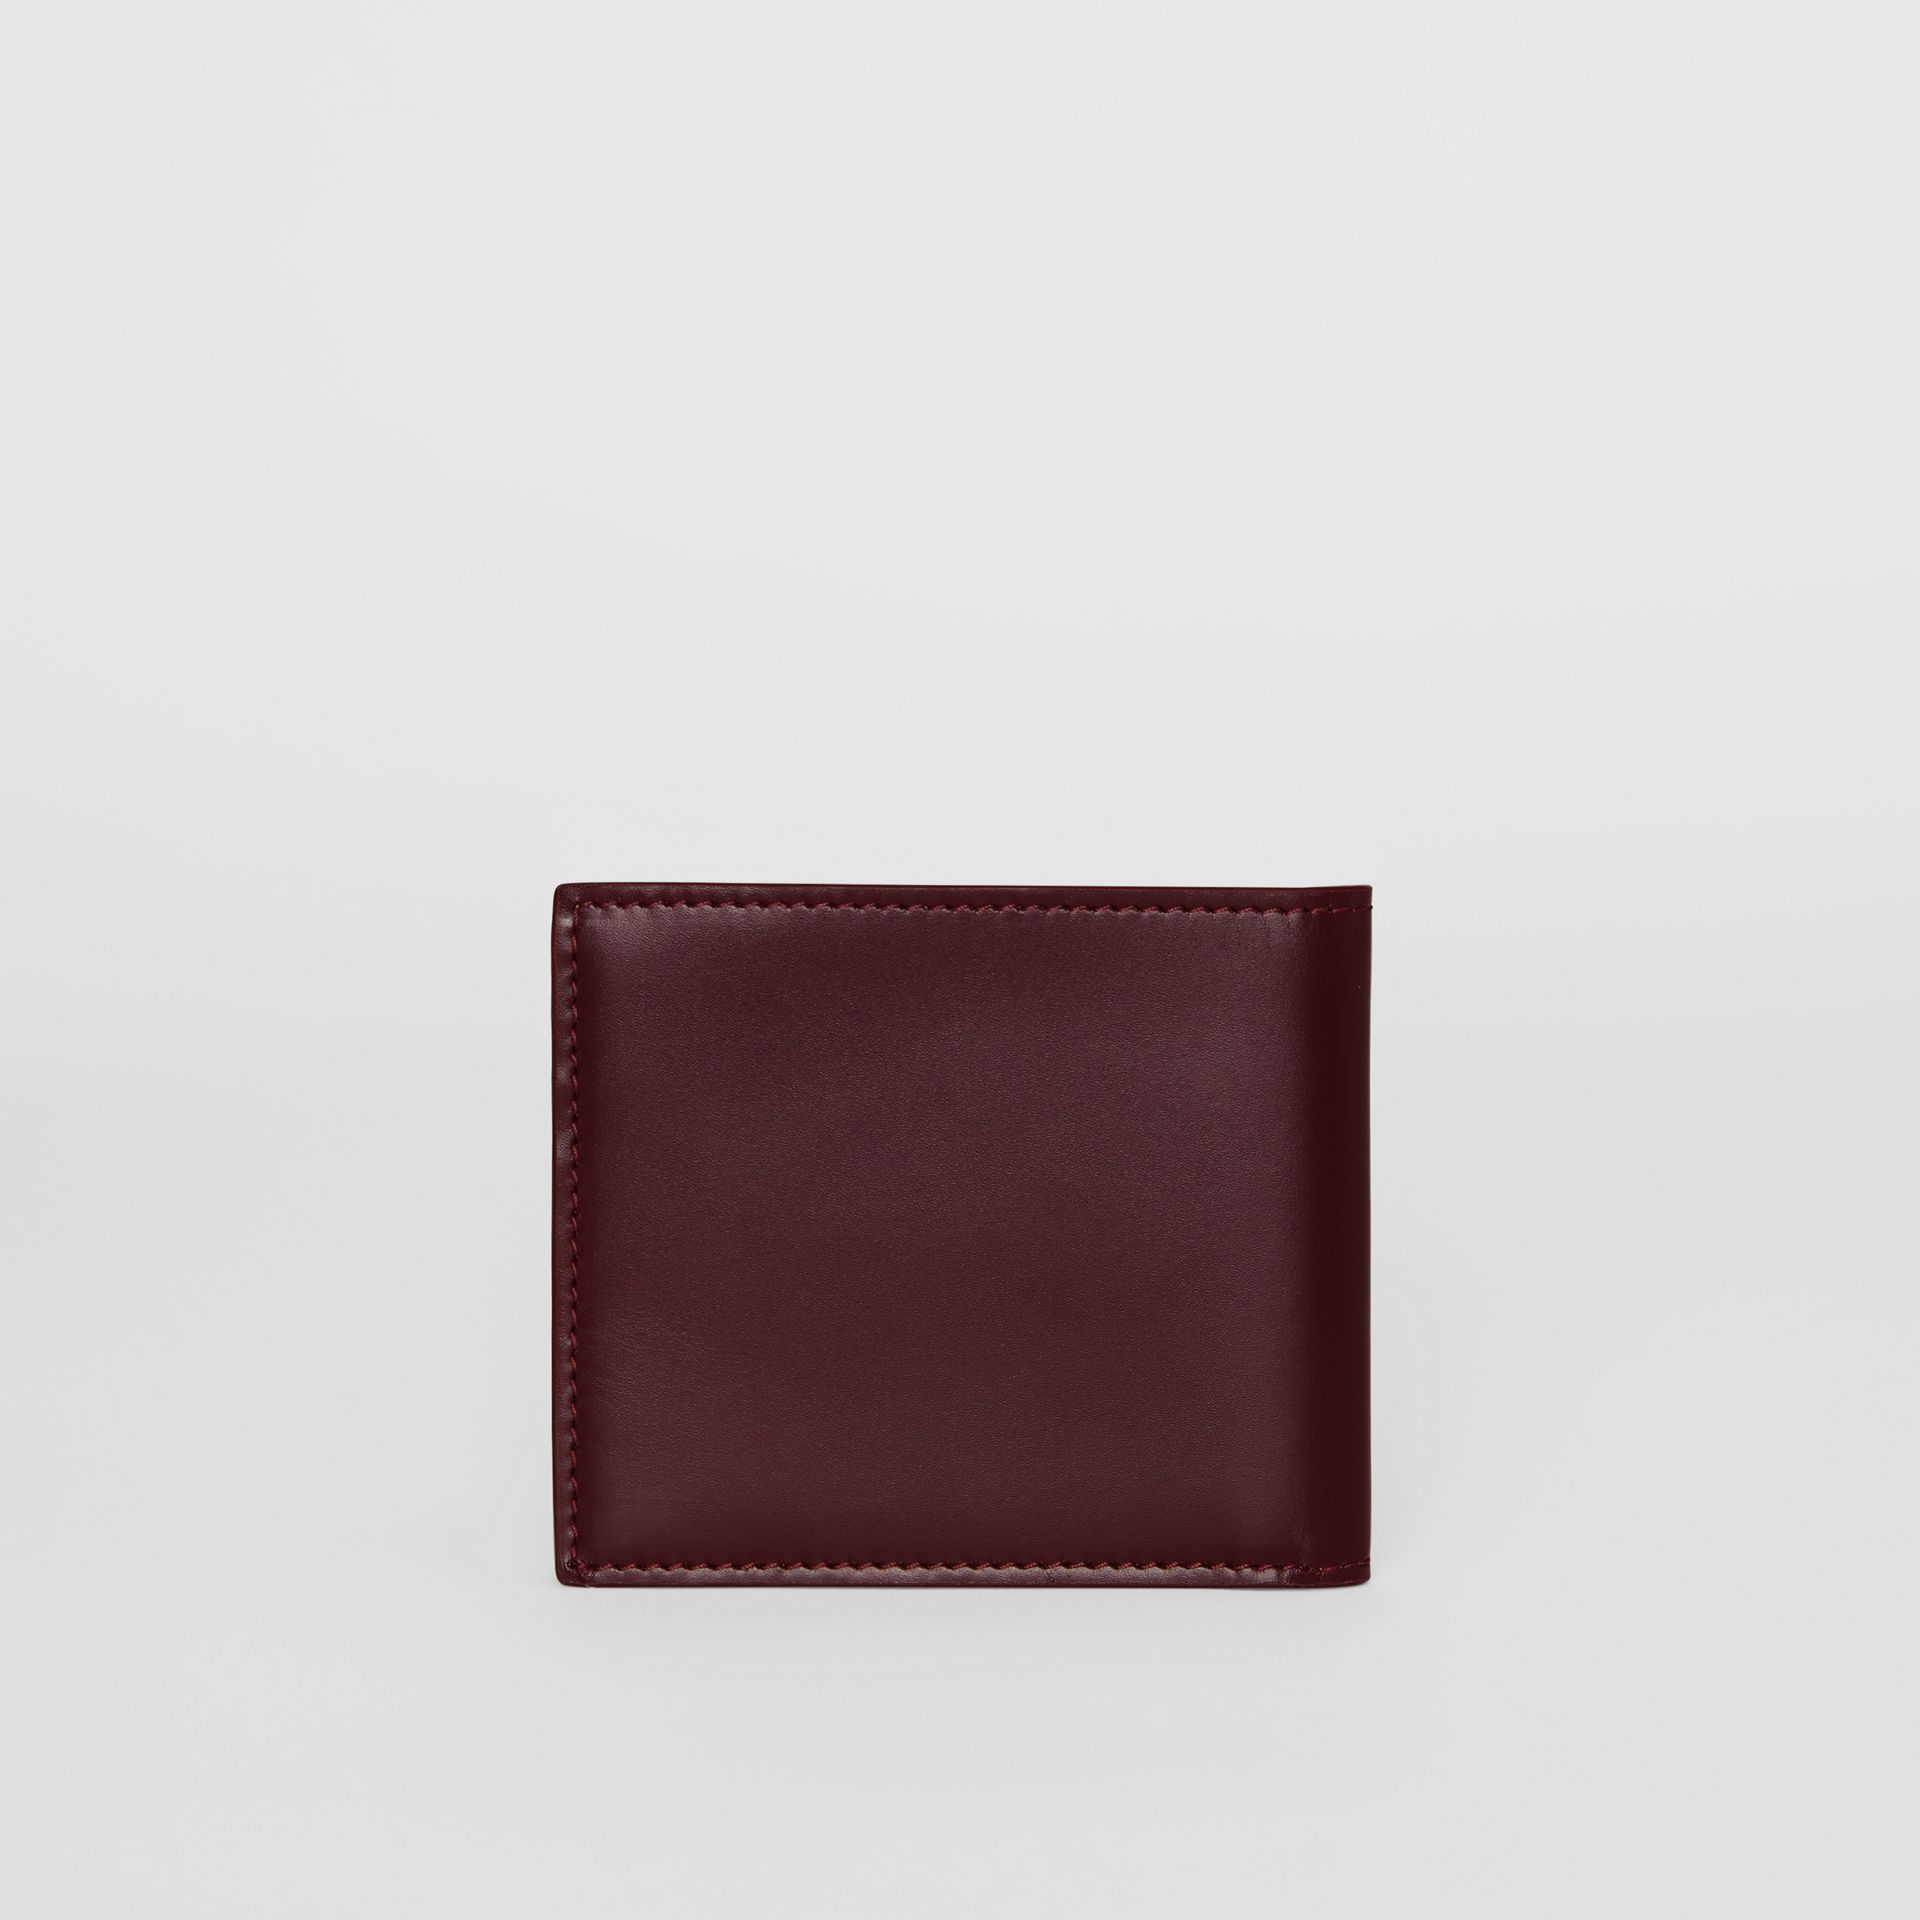 Monogram Motif Leather International Bifold Wallet in Oxblood - Men | Burberry - gallery image 4